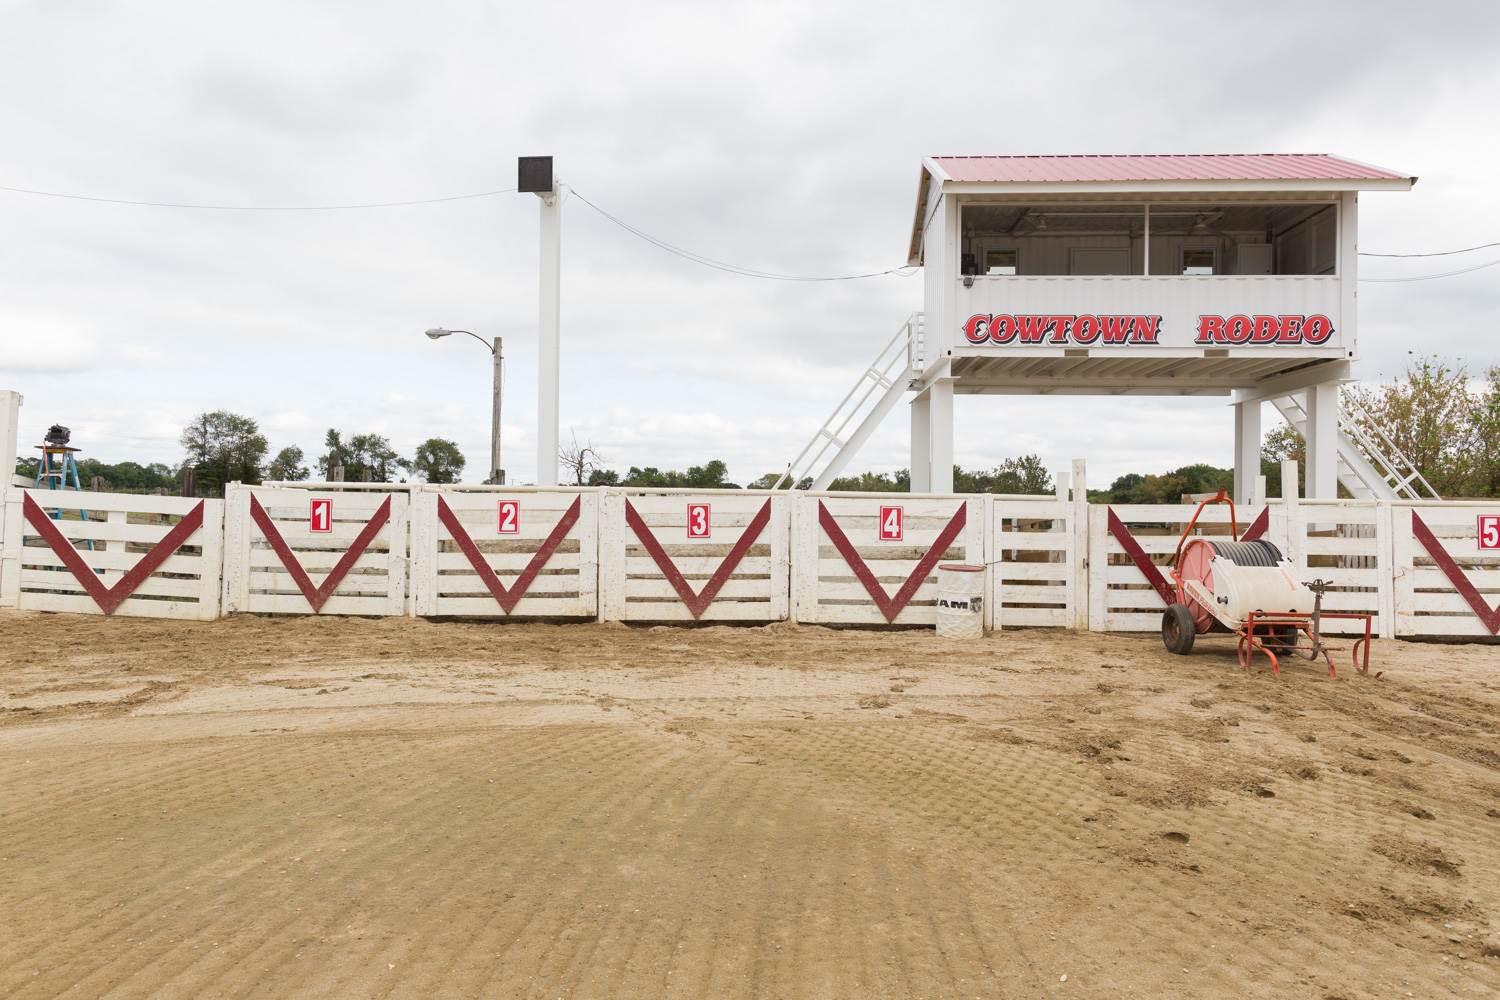 cowtown rodeo grounds